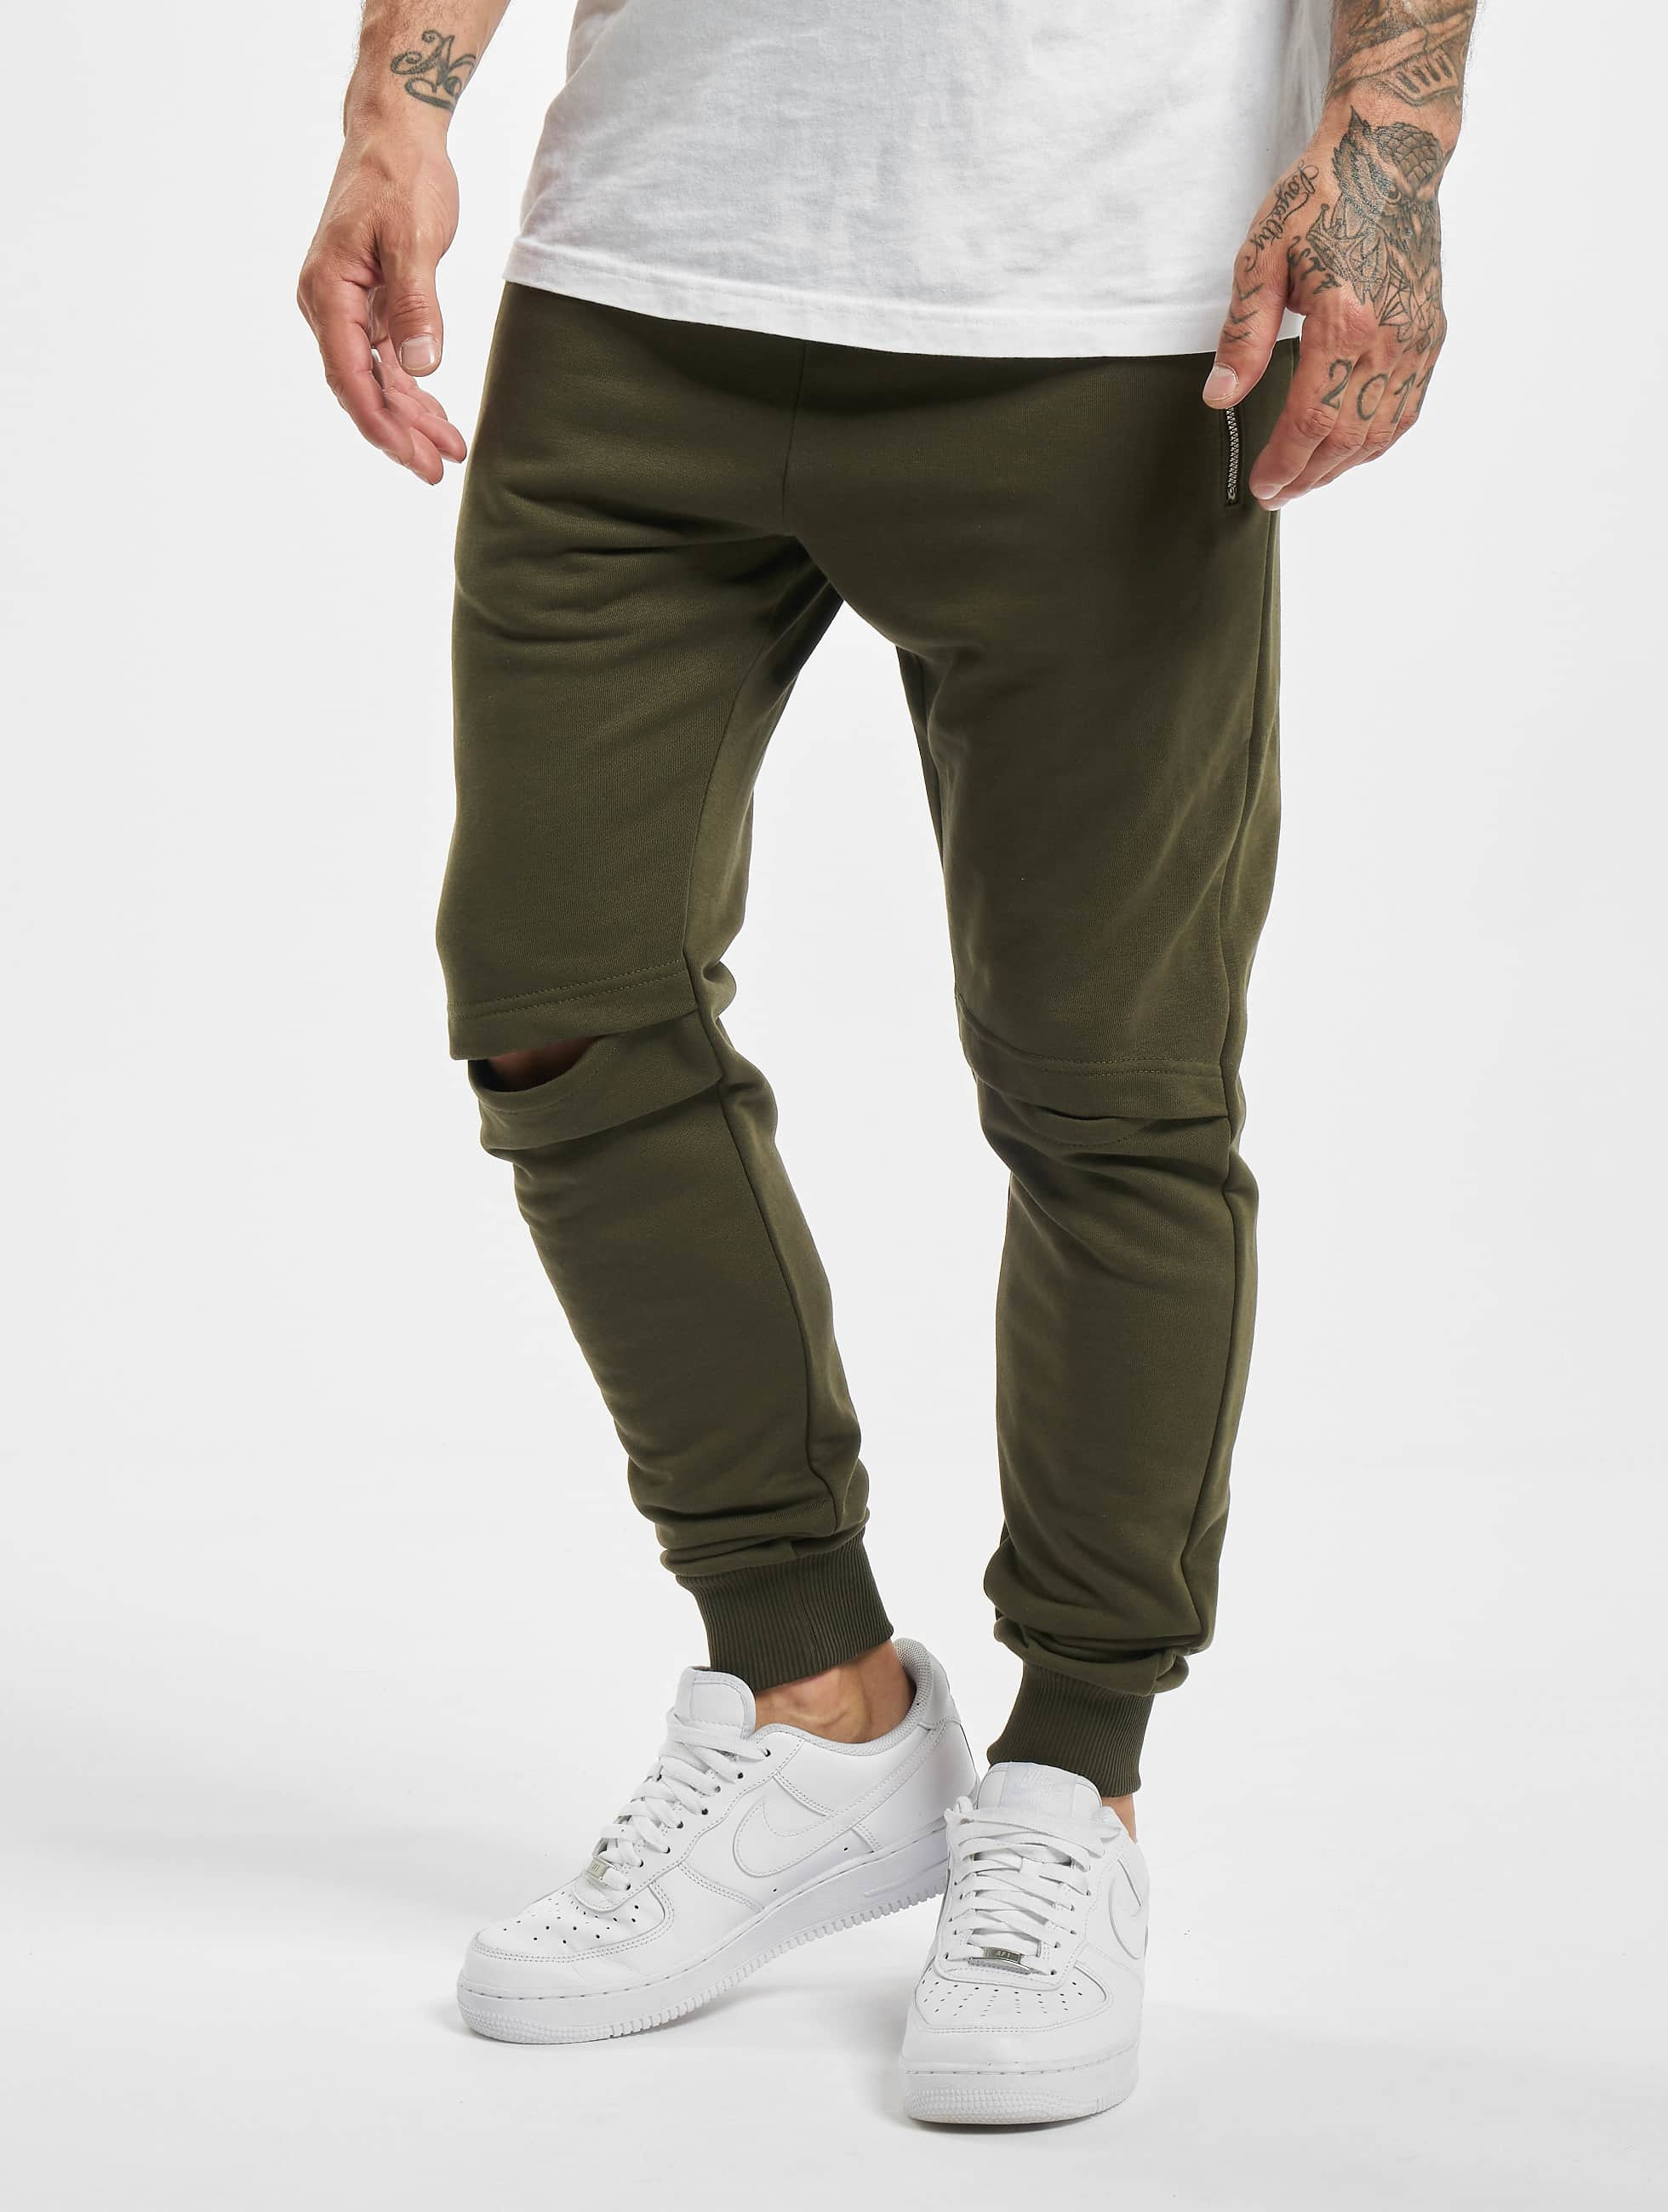 DEF / Sweat Pant Rider in olive M